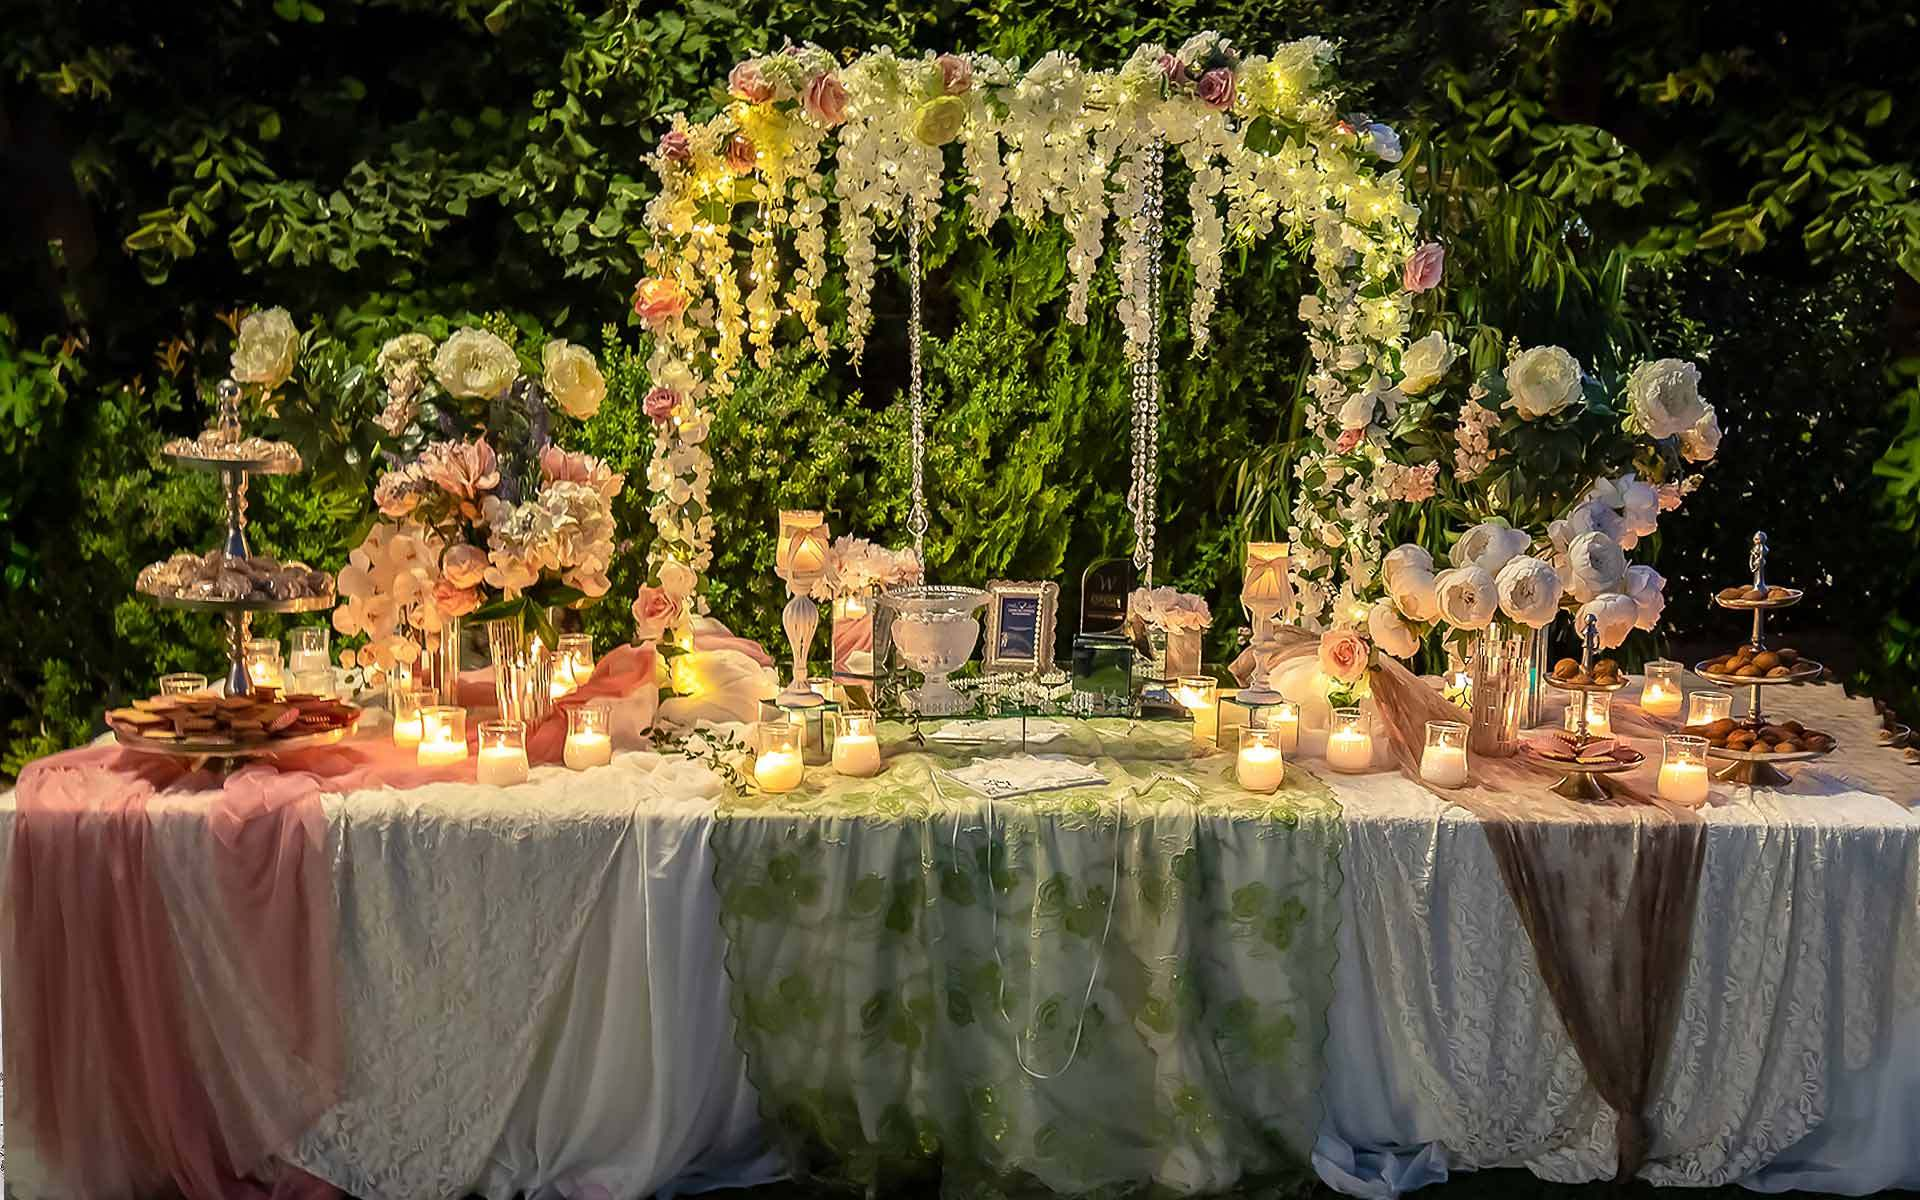 Brilliant-wedding-Guest-Book-will-combine-rustic-and-elegance-to-your-guest-signing-table